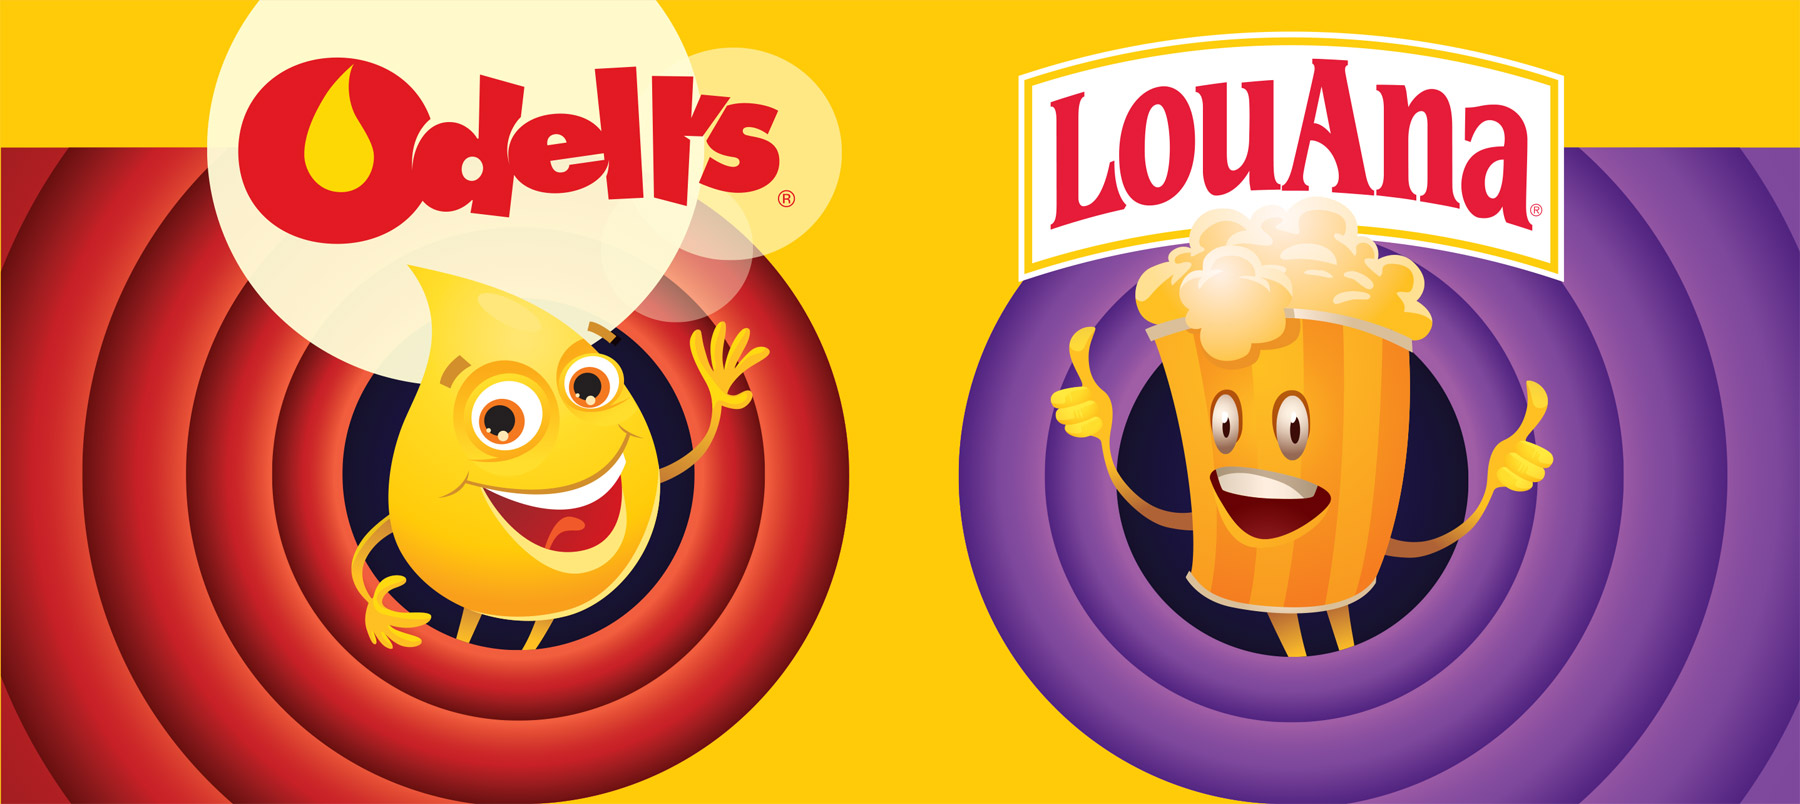 Odell's and LouAna, Industry leaders in premium popping and topping products for popcorn.